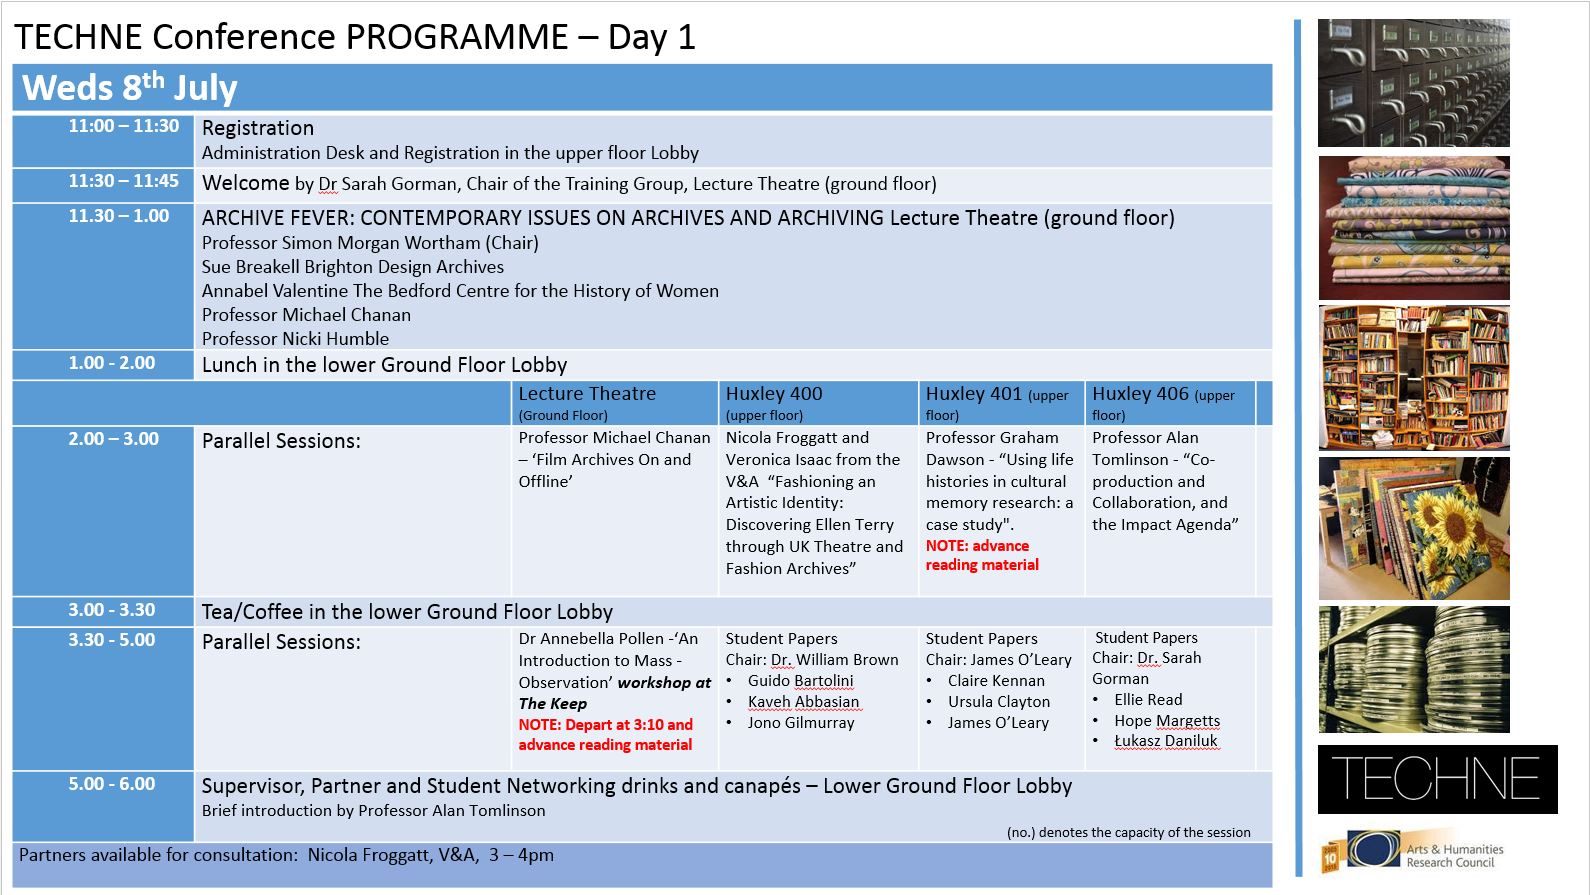 TECHNE-Congress-July-2015-Day-1-Programme